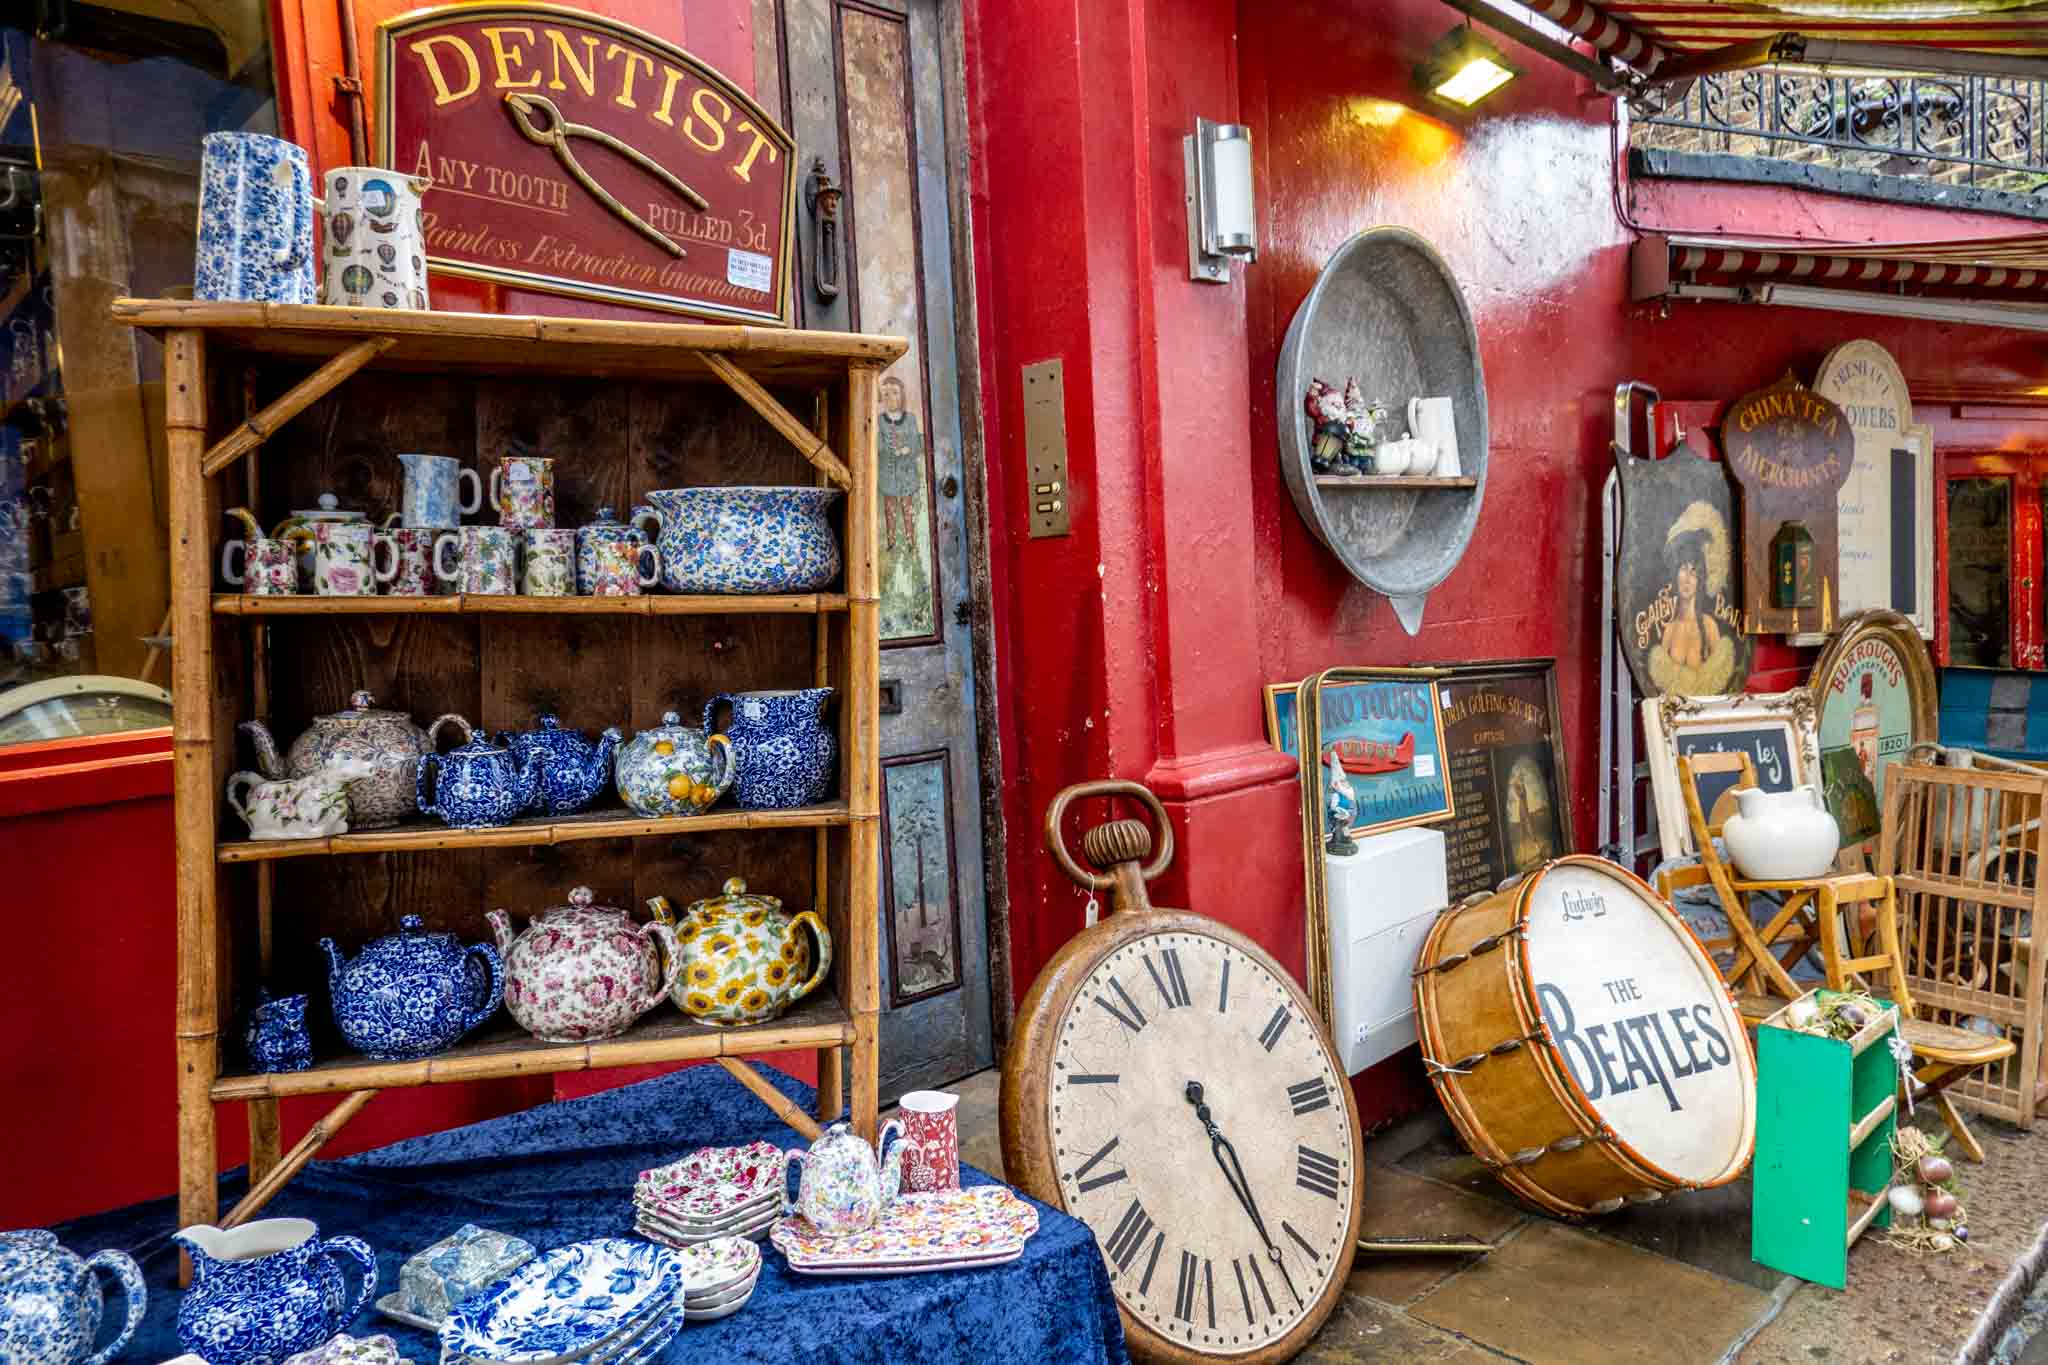 Teapots, ceramics, and other items displayed outside antique shop